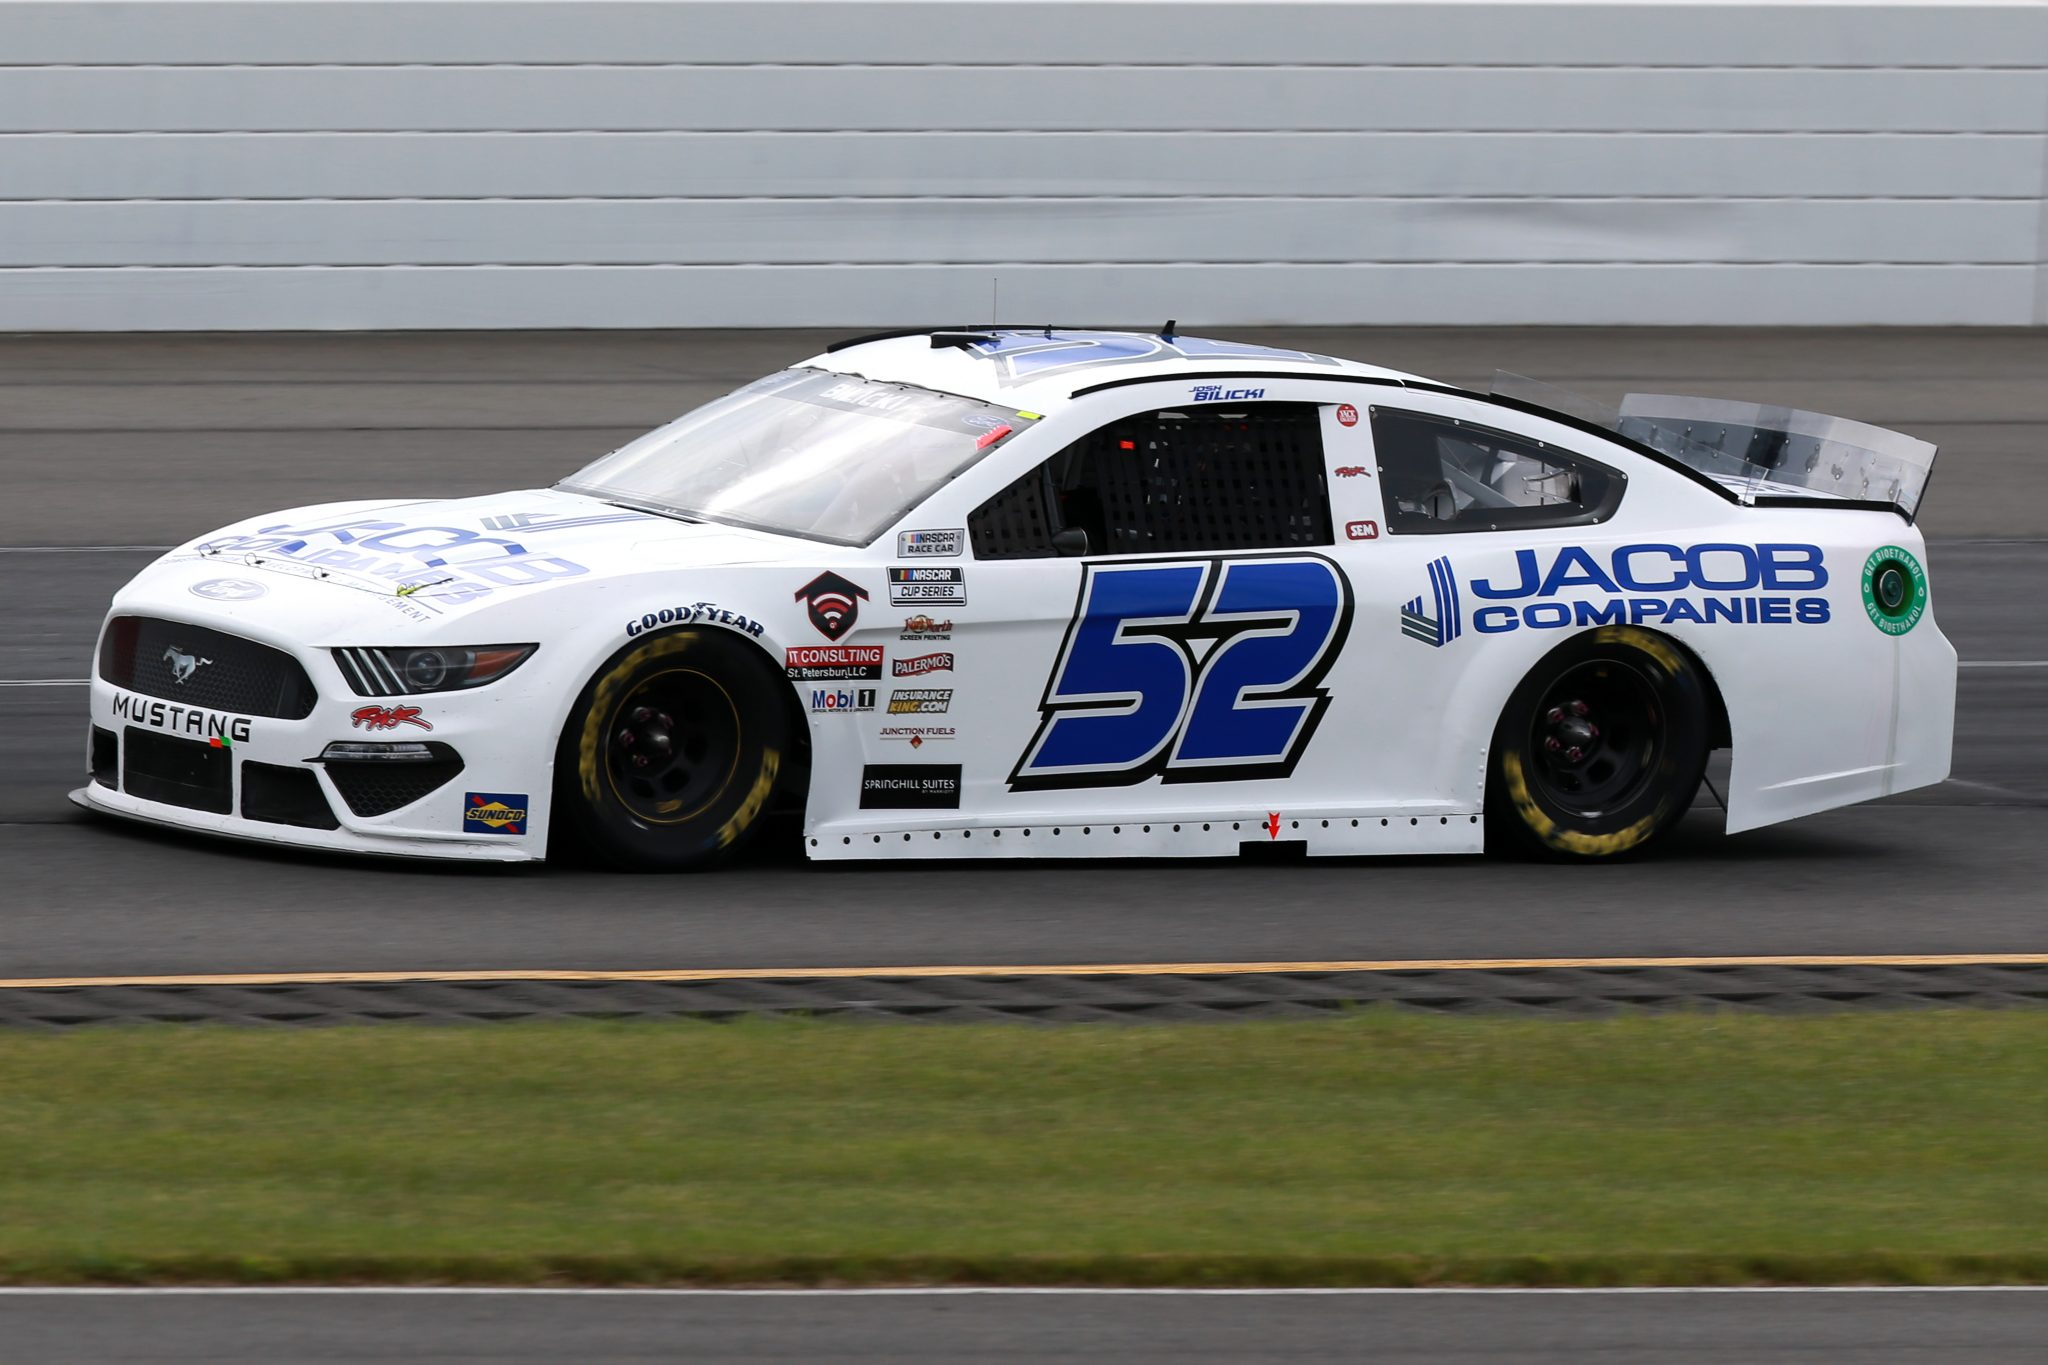 LONG POND, PENNSYLVANIA - JUNE 26: Josh Bilicki, driver of the #52 Ford, drives during the NASCAR Cup Series Pocono Organics CBD 325 at Pocono Raceway on June 26, 2021 in Long Pond, Pennsylvania. (Photo by Sean Gardner/Getty Images)   Getty Images